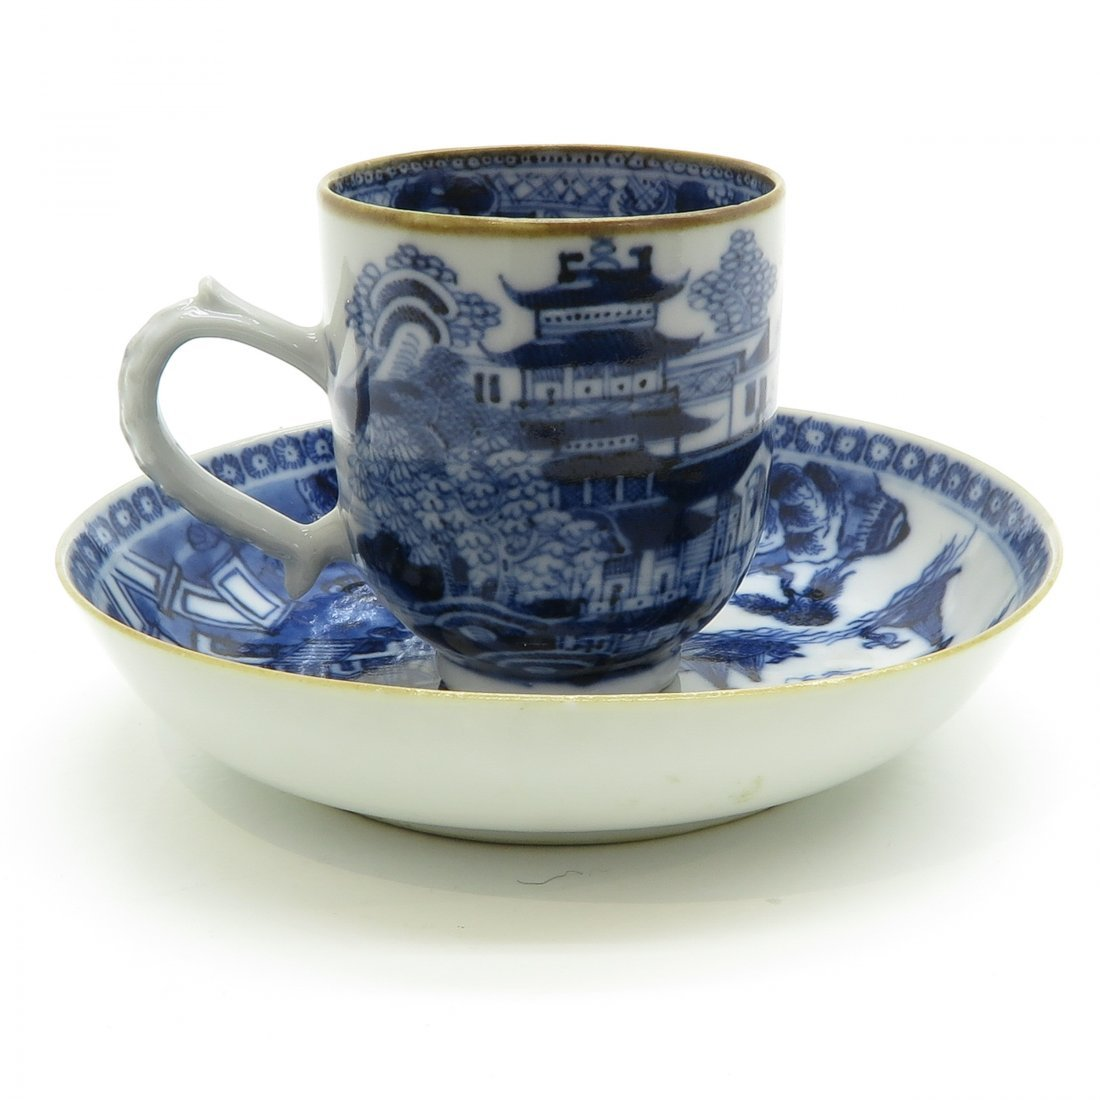 China Porcelain Cup and Saucer Circa 1800 - 3